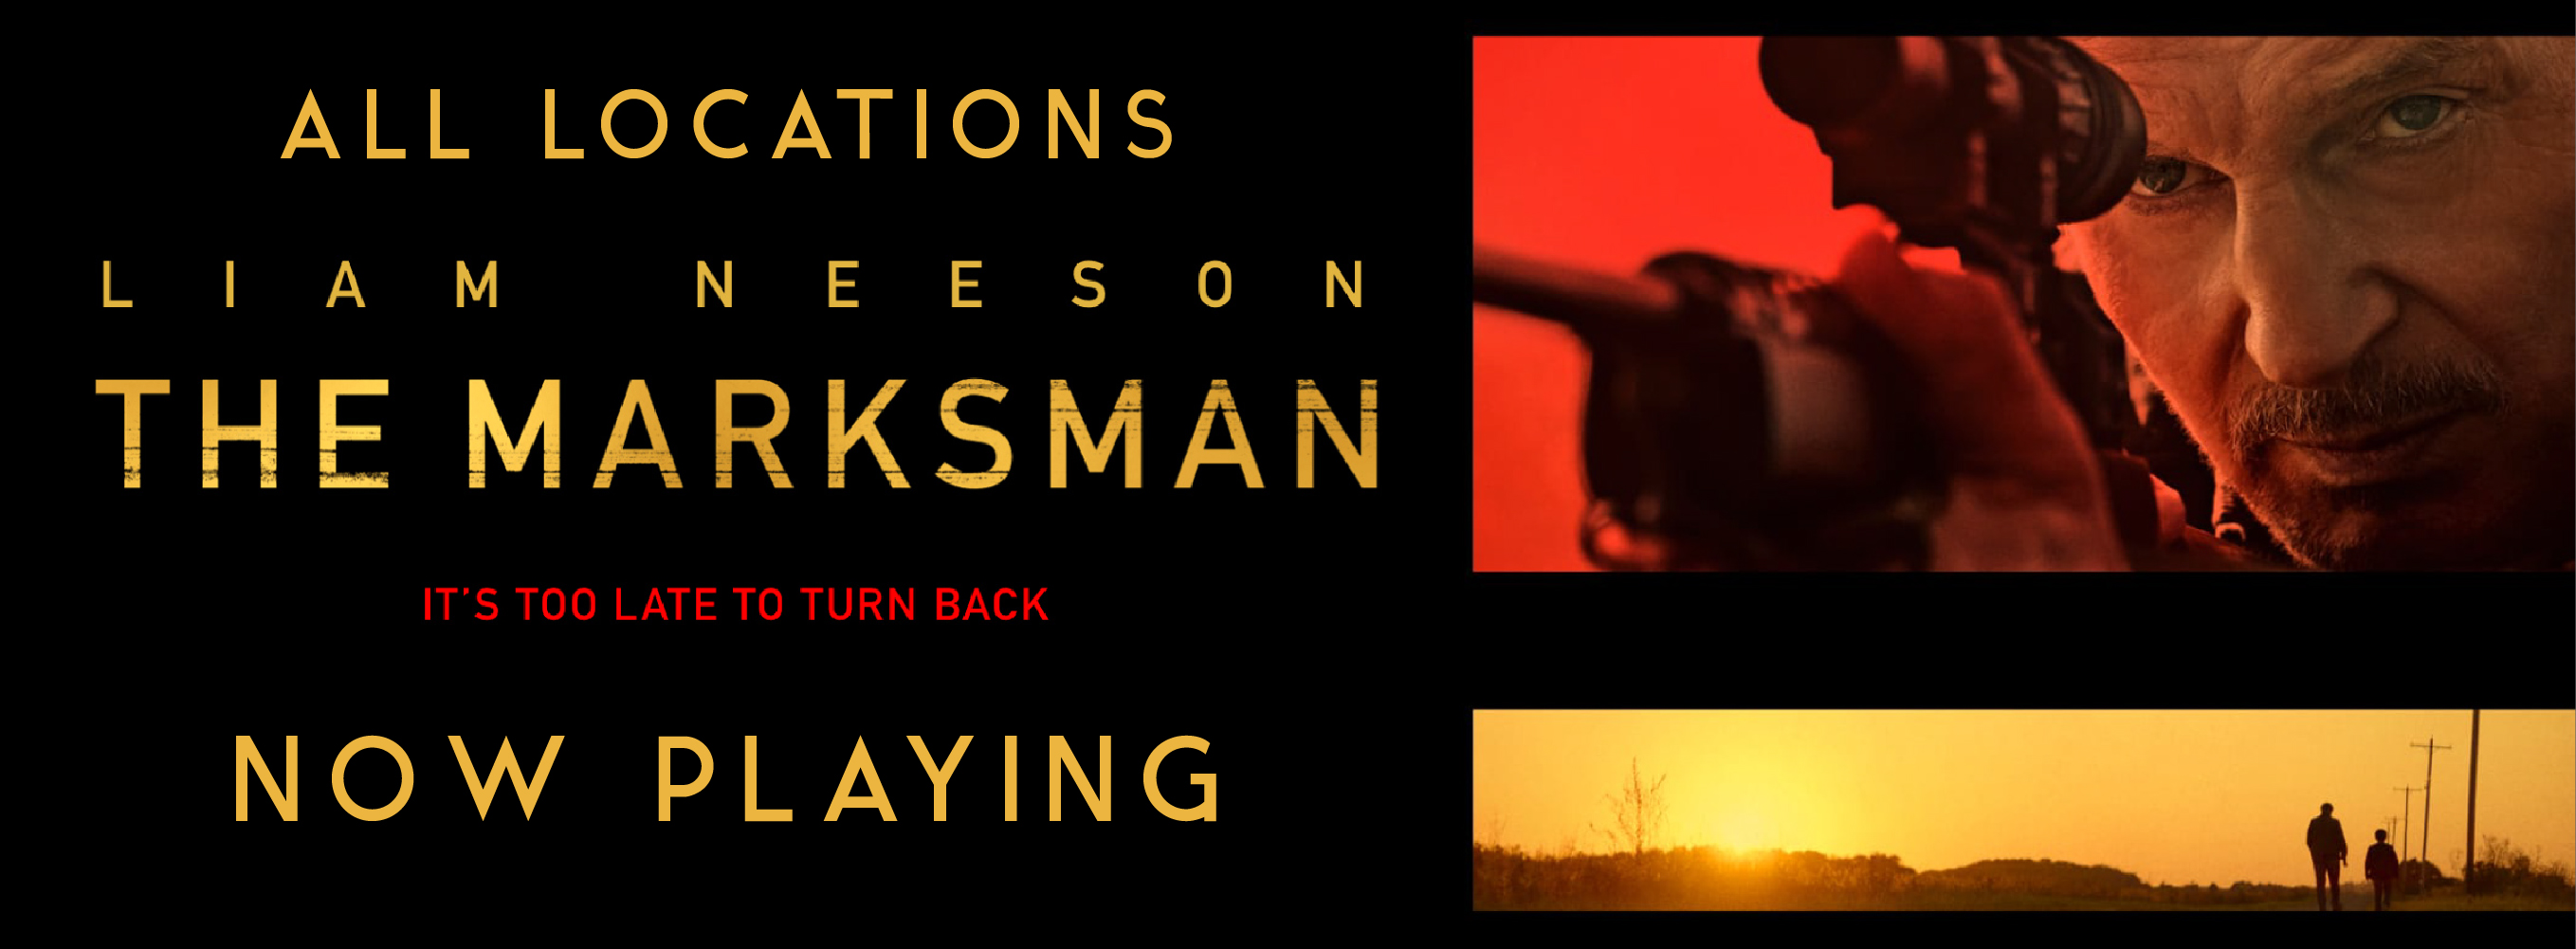 Click for tickets to The Marksman now playing at all locations